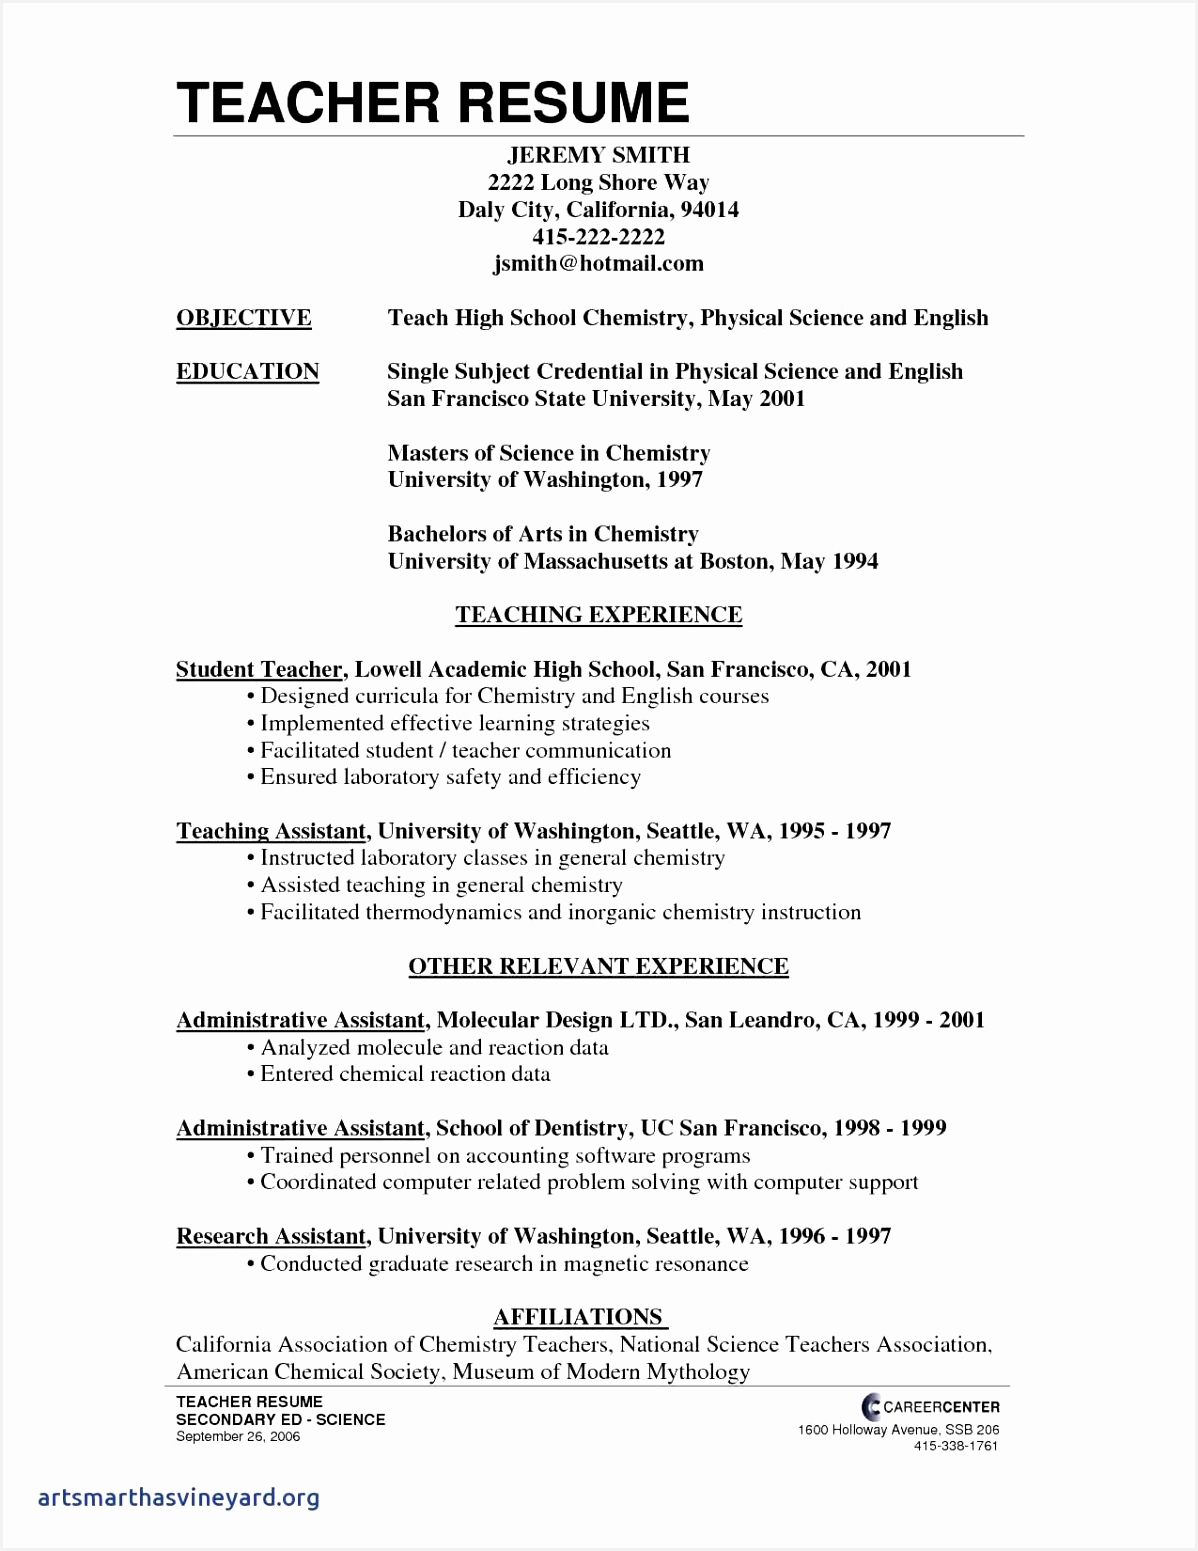 Nurse Technician Resume Mplhs Lovely Certified Ophthalmic assistant Resume Fresh Pharmacy Tech Resume Of 7 Nurse Technician Resume